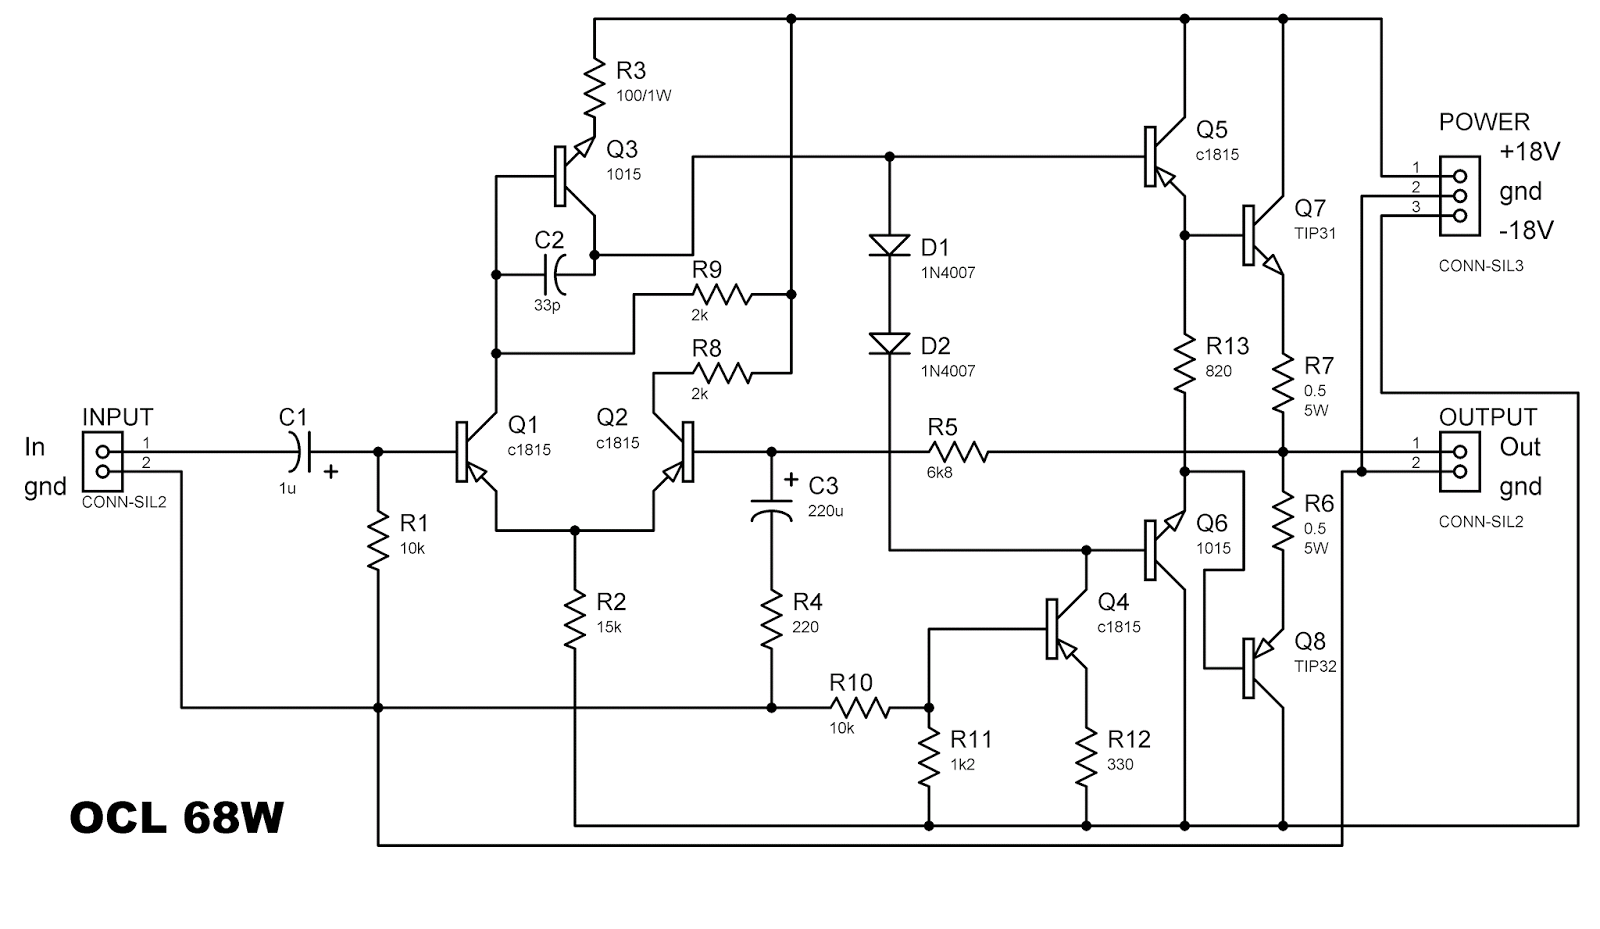 hight resolution of ocl 68 watt power amplifier electronic circuit inverter circuit othercircuit amplifiercircuit circuit diagram